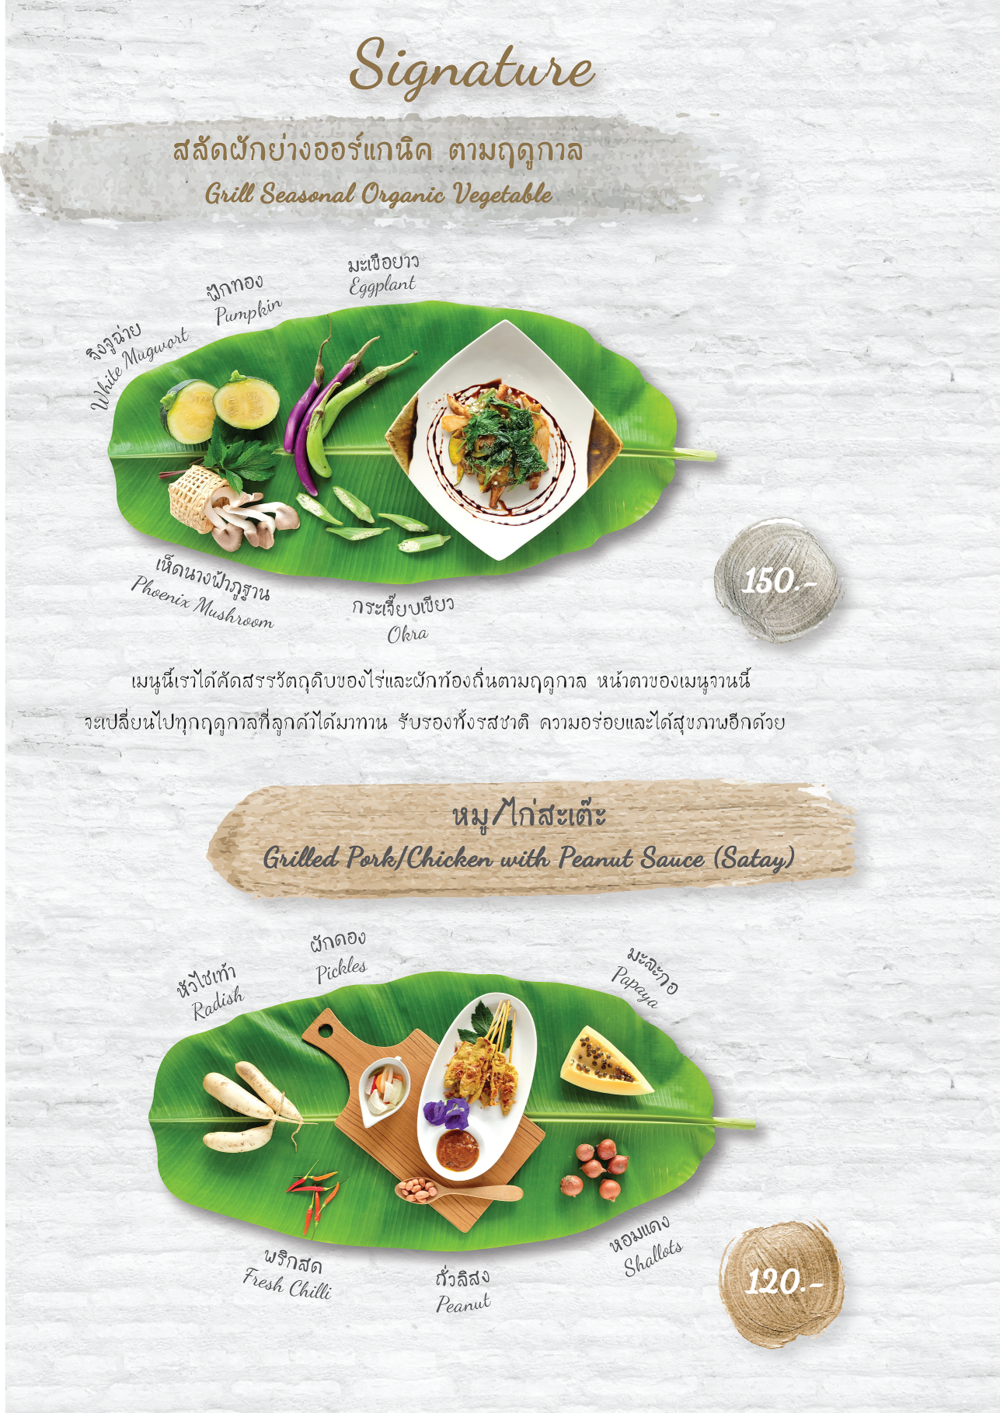 _กับข้าวบ้าน.Final.Menu.List&Signature.30.11.59_17 page_Page_04.png